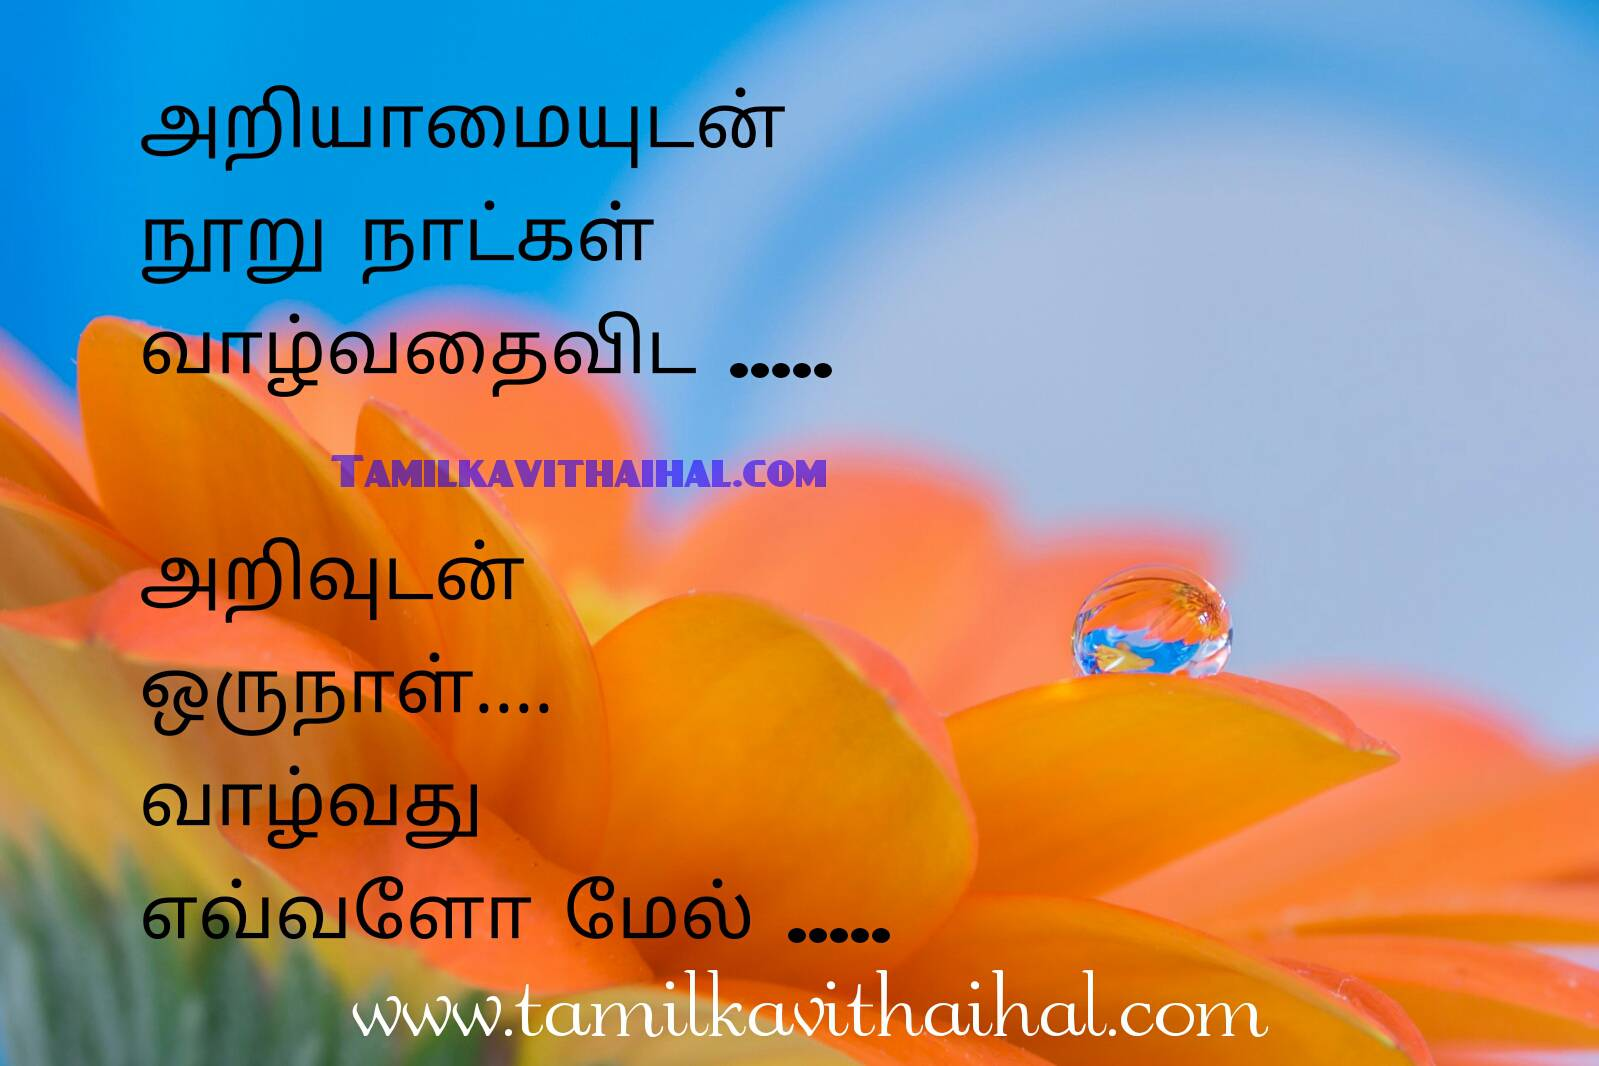 Image of: Wallpaper Awesome Tamil Quotes With Picture About Feelinf Love Heart Touching Kavithai Whatsapp Dp Images Tamil Kavithaihal Awesome Tamil Quotes With Picture About Feelinf Love Heart Touching